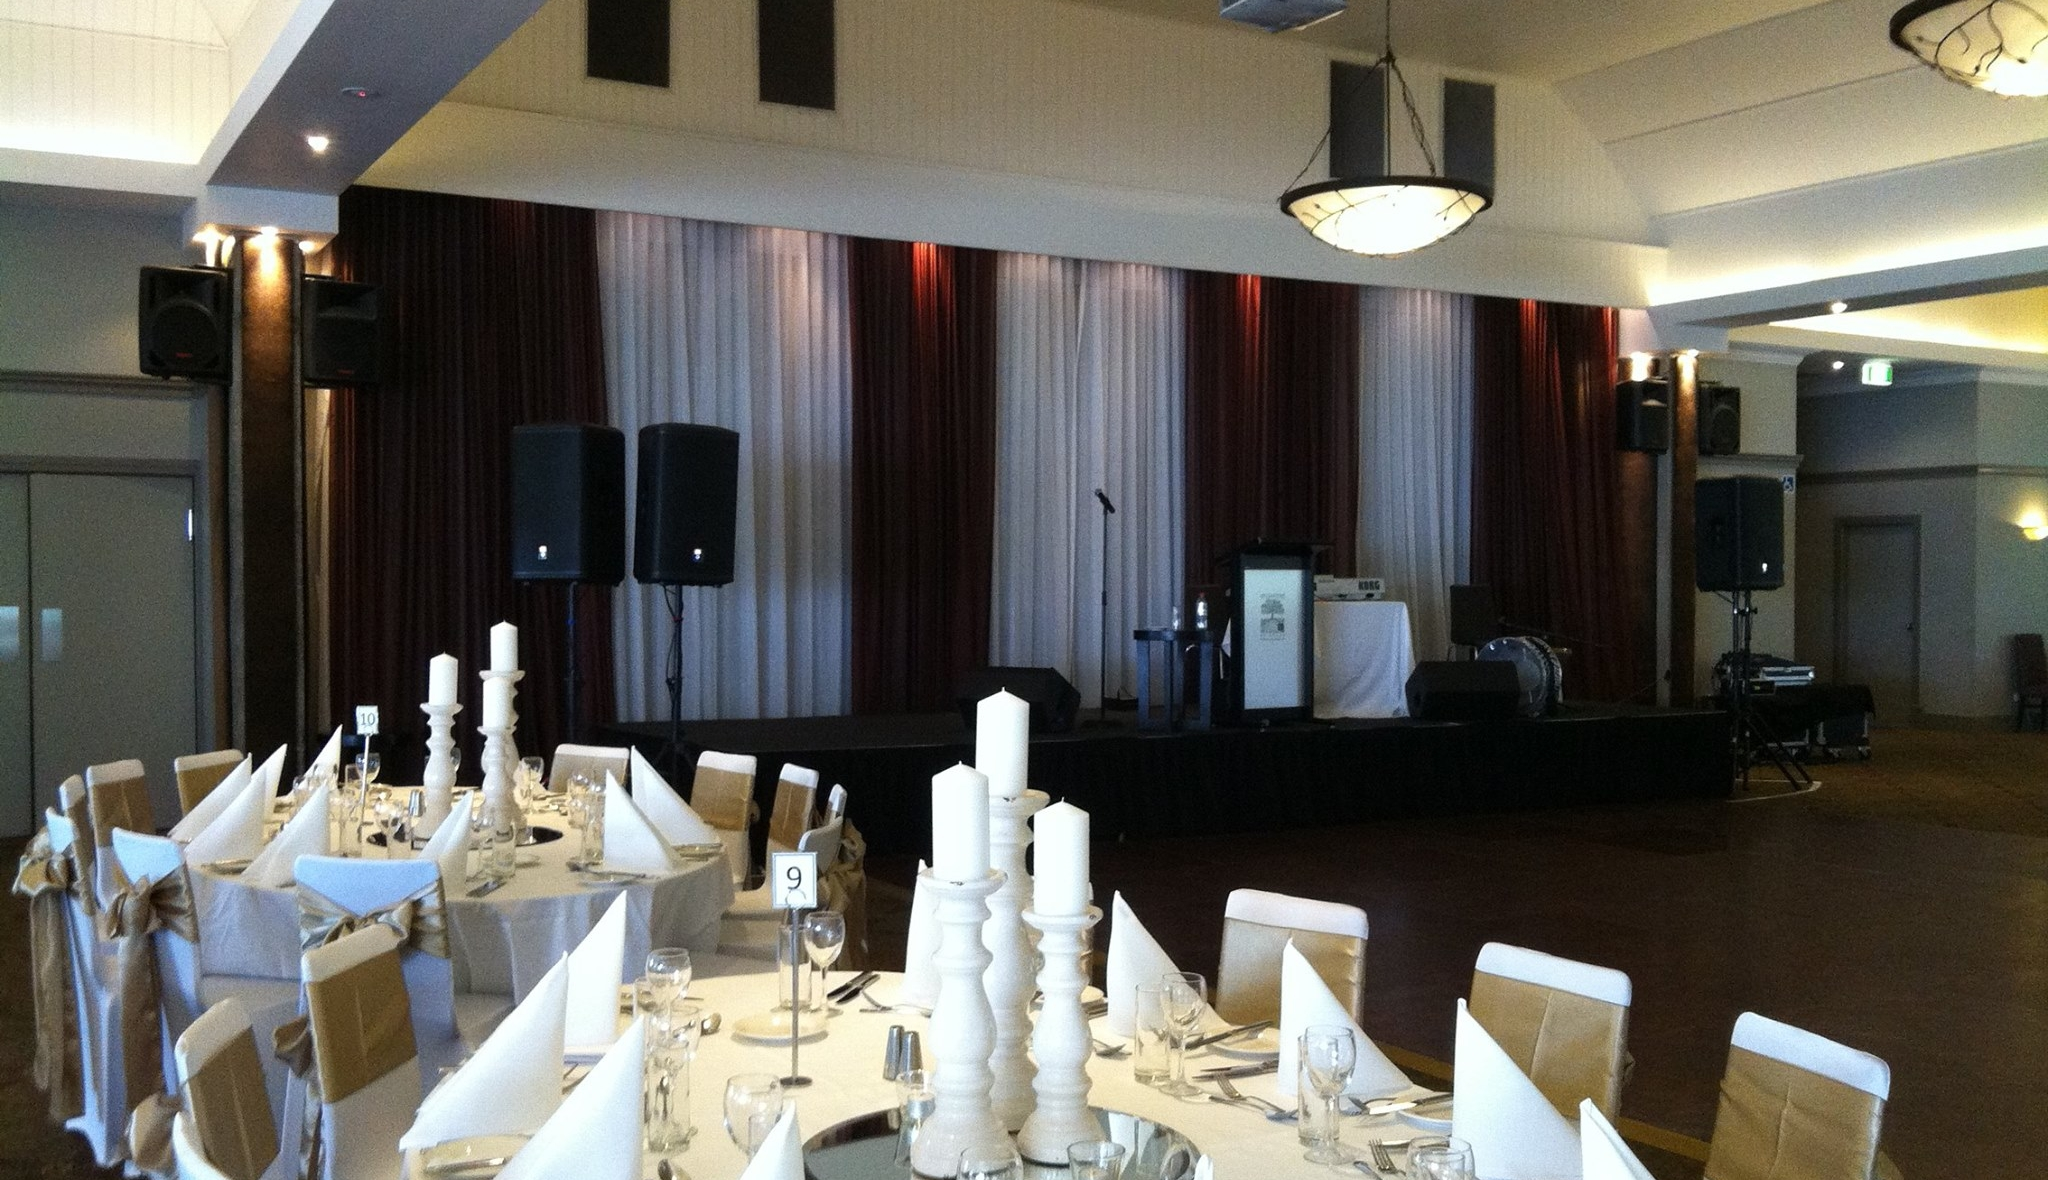 Music system set up for corporate function